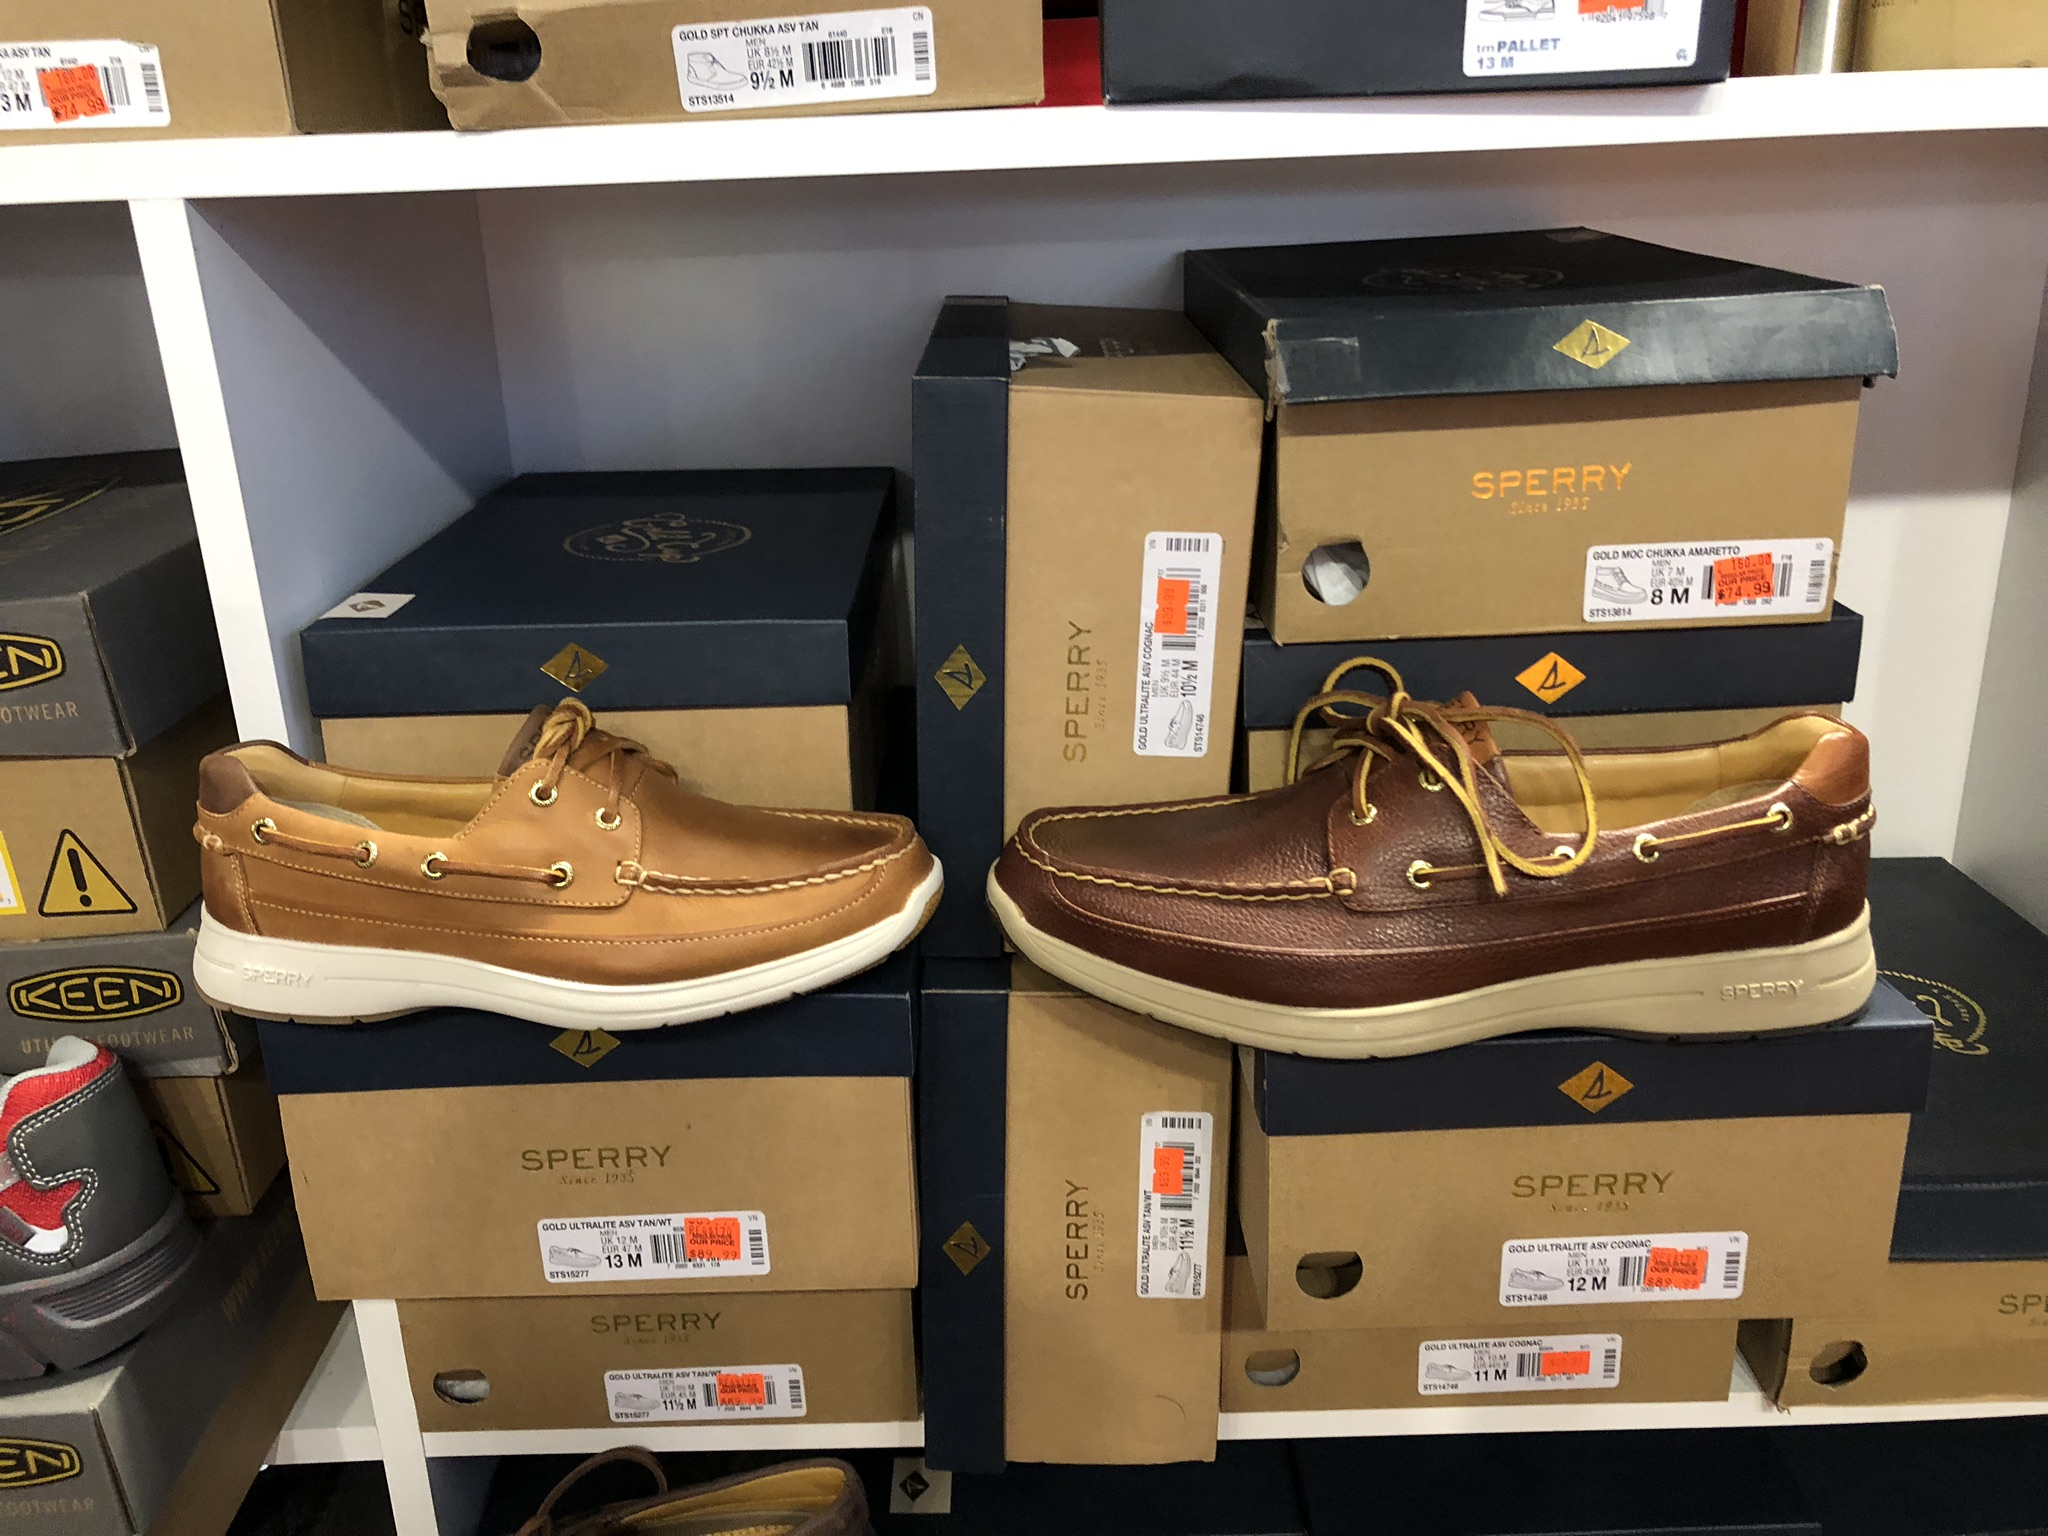 Sperry Gold Cup Men's Boat Shoes - $89.99